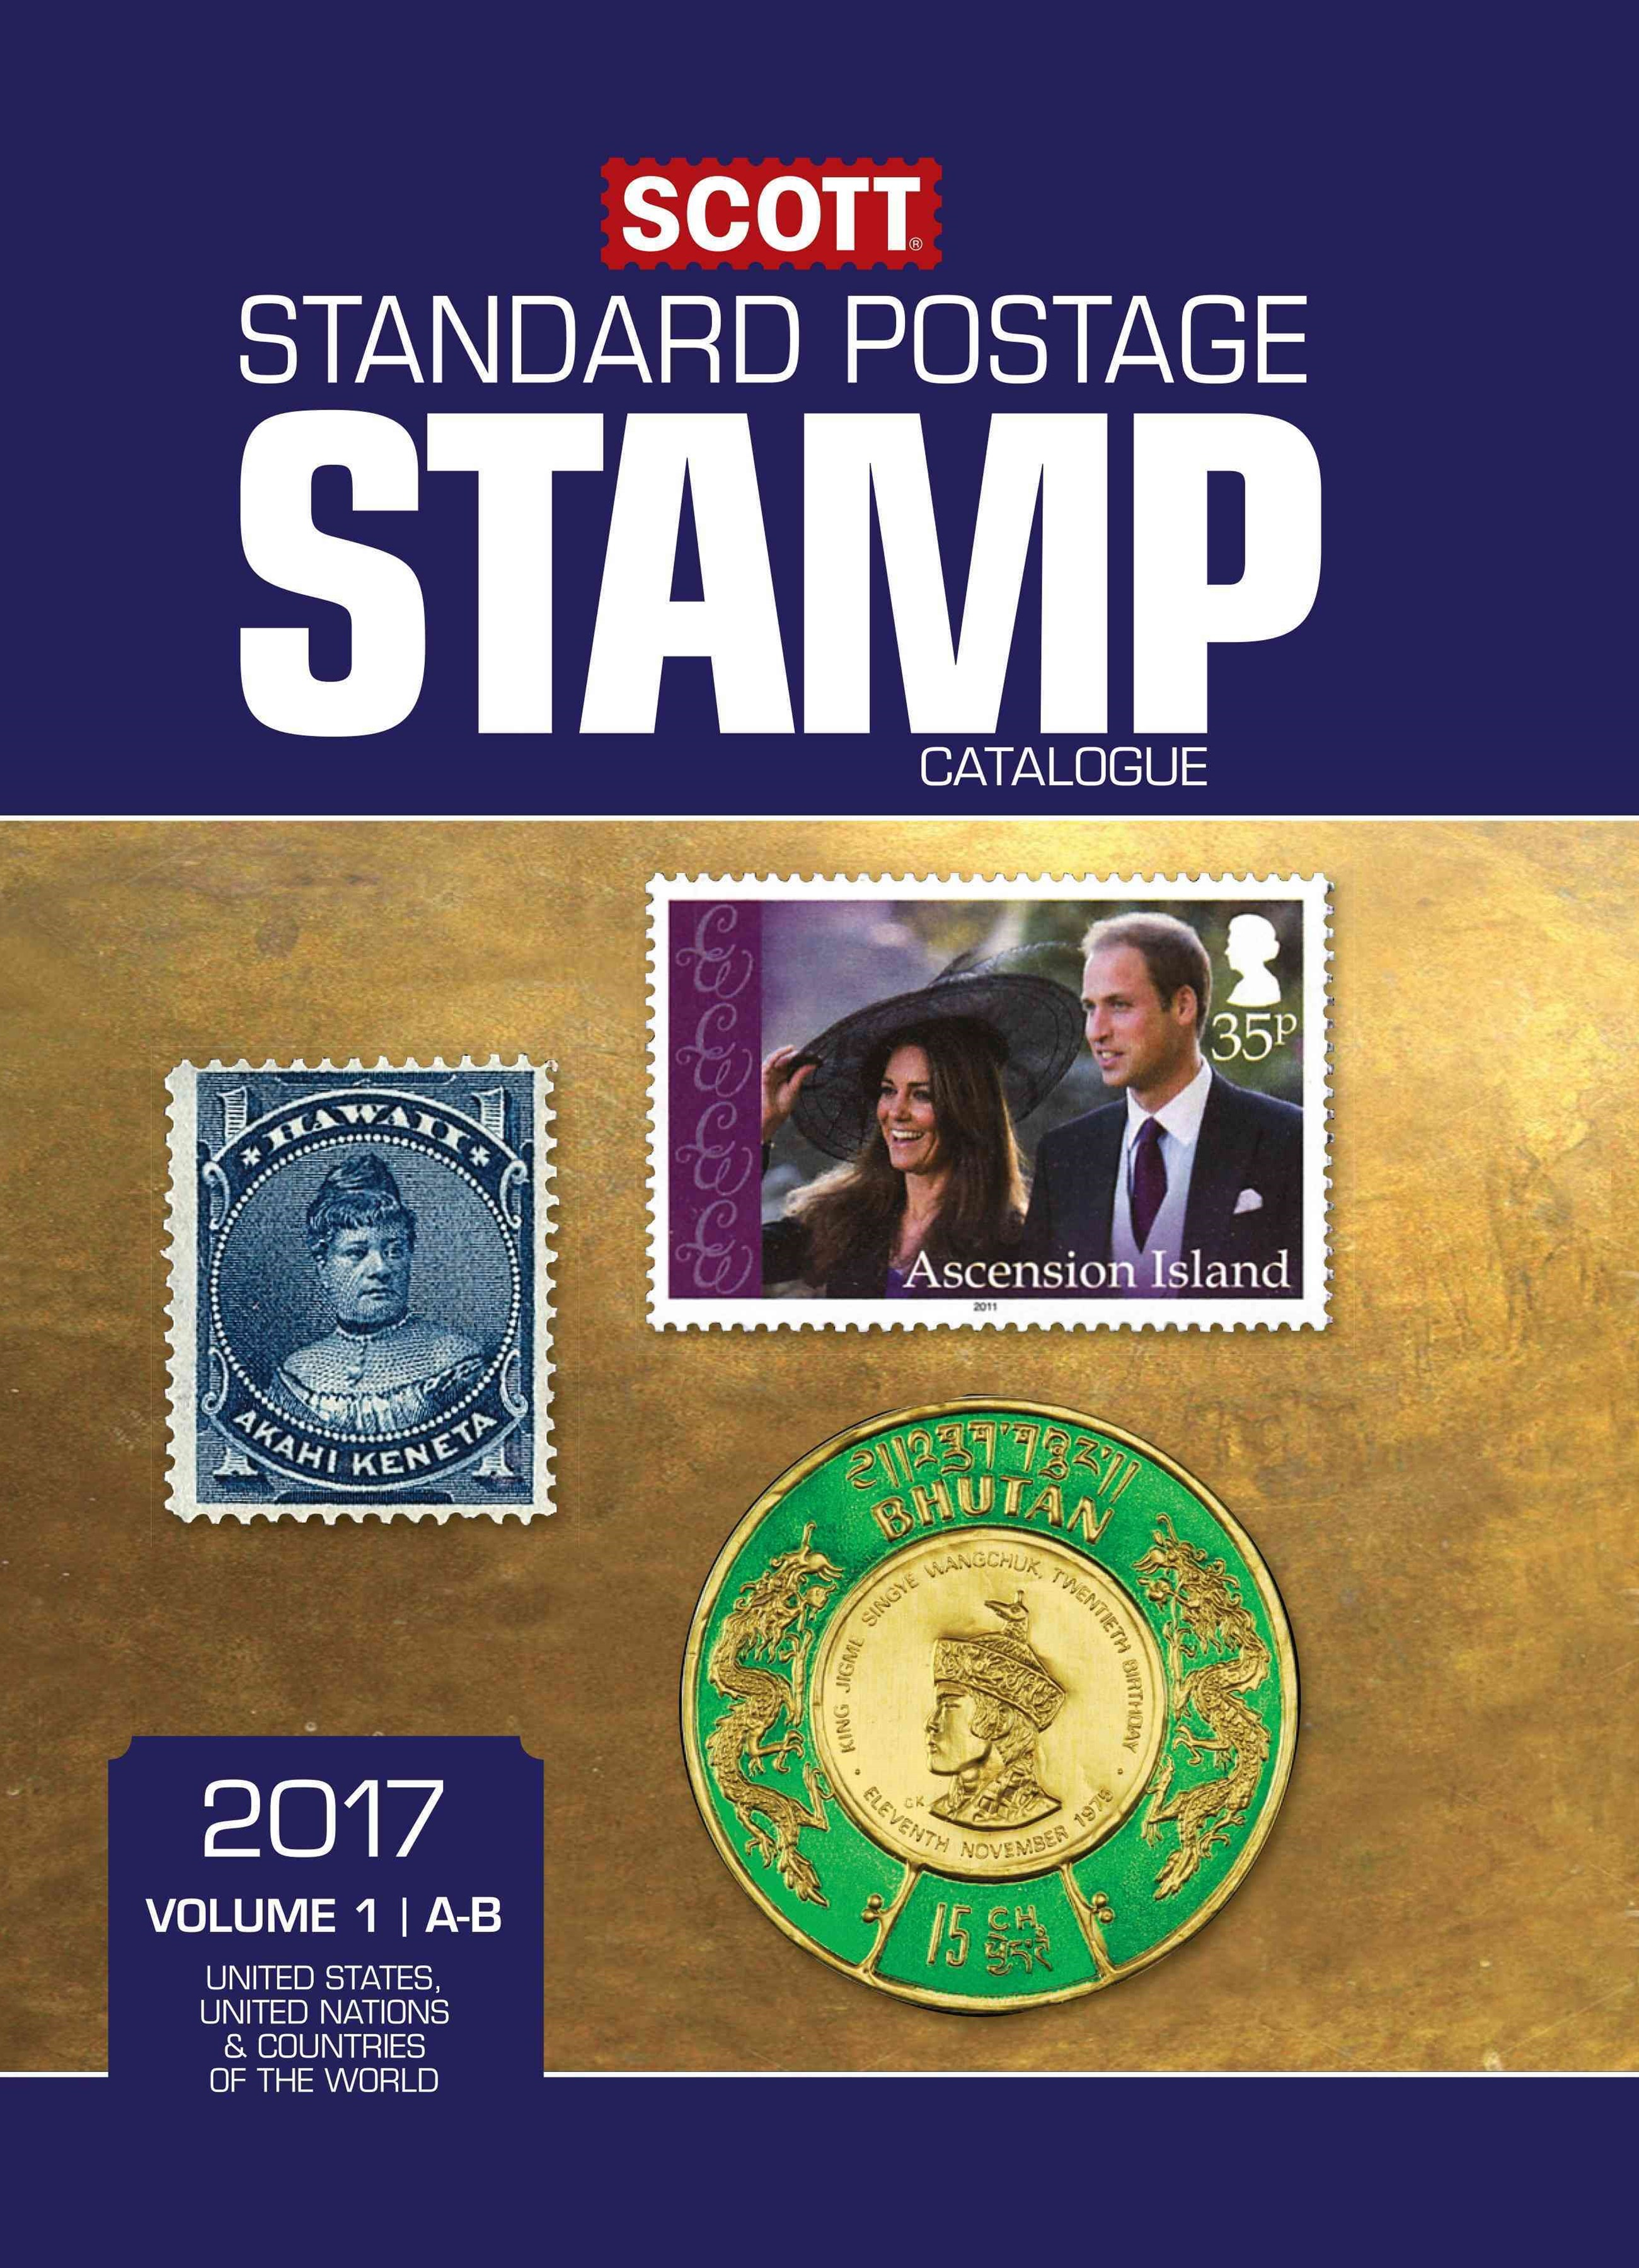 Scott 2017 Standard Postage Stamp Catalogue, Volume 1